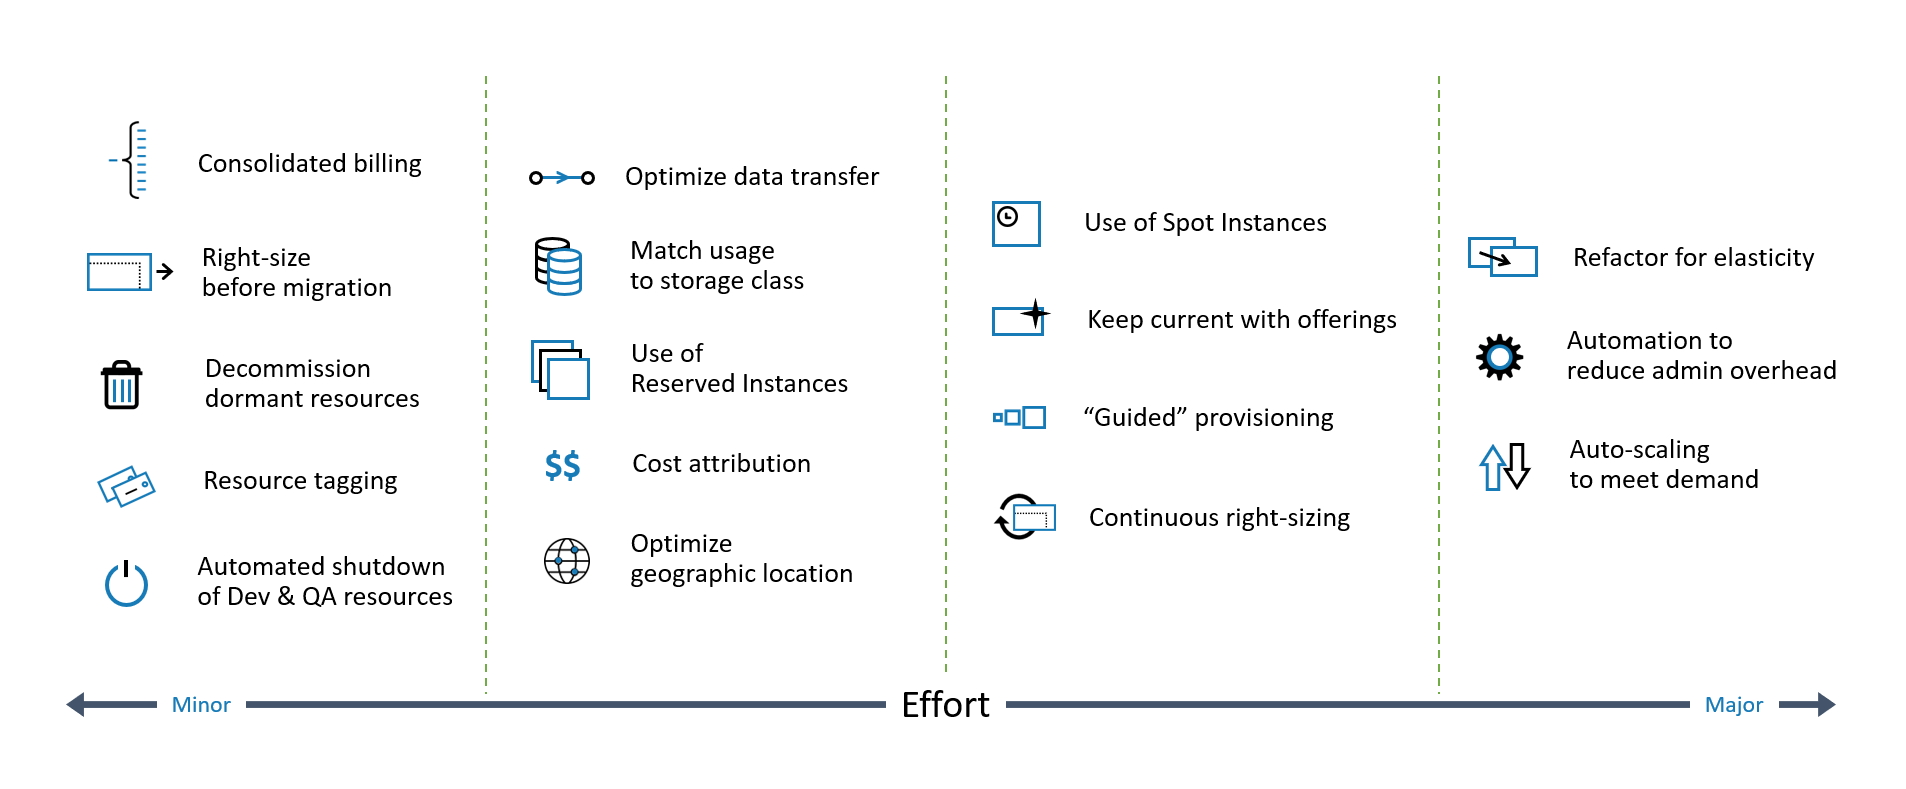 cloud cost optimization activities and effort chart